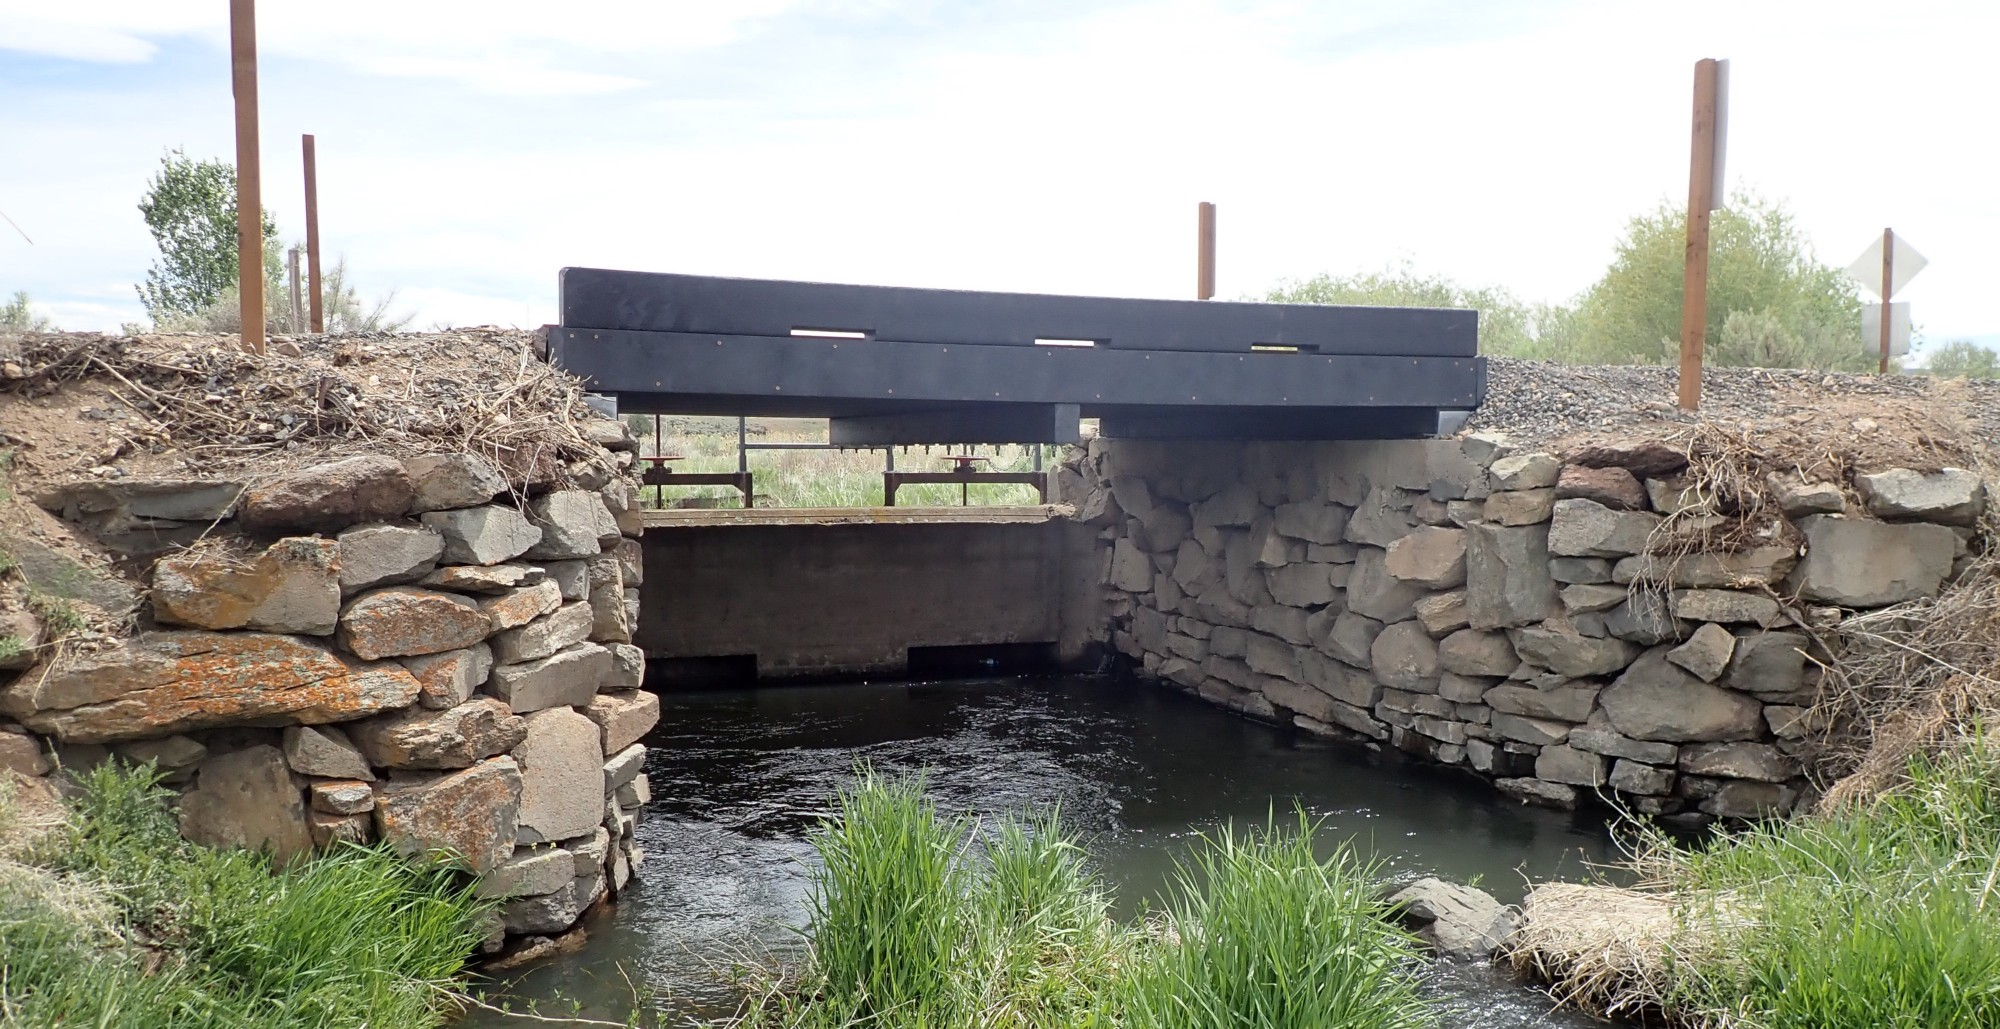 The 16-foot thermoplastic structure carries vehicle and foot traffic across Bridge Creek on East Canal Road. The span is made from 100% post-consumer and industrial recycled plastic.